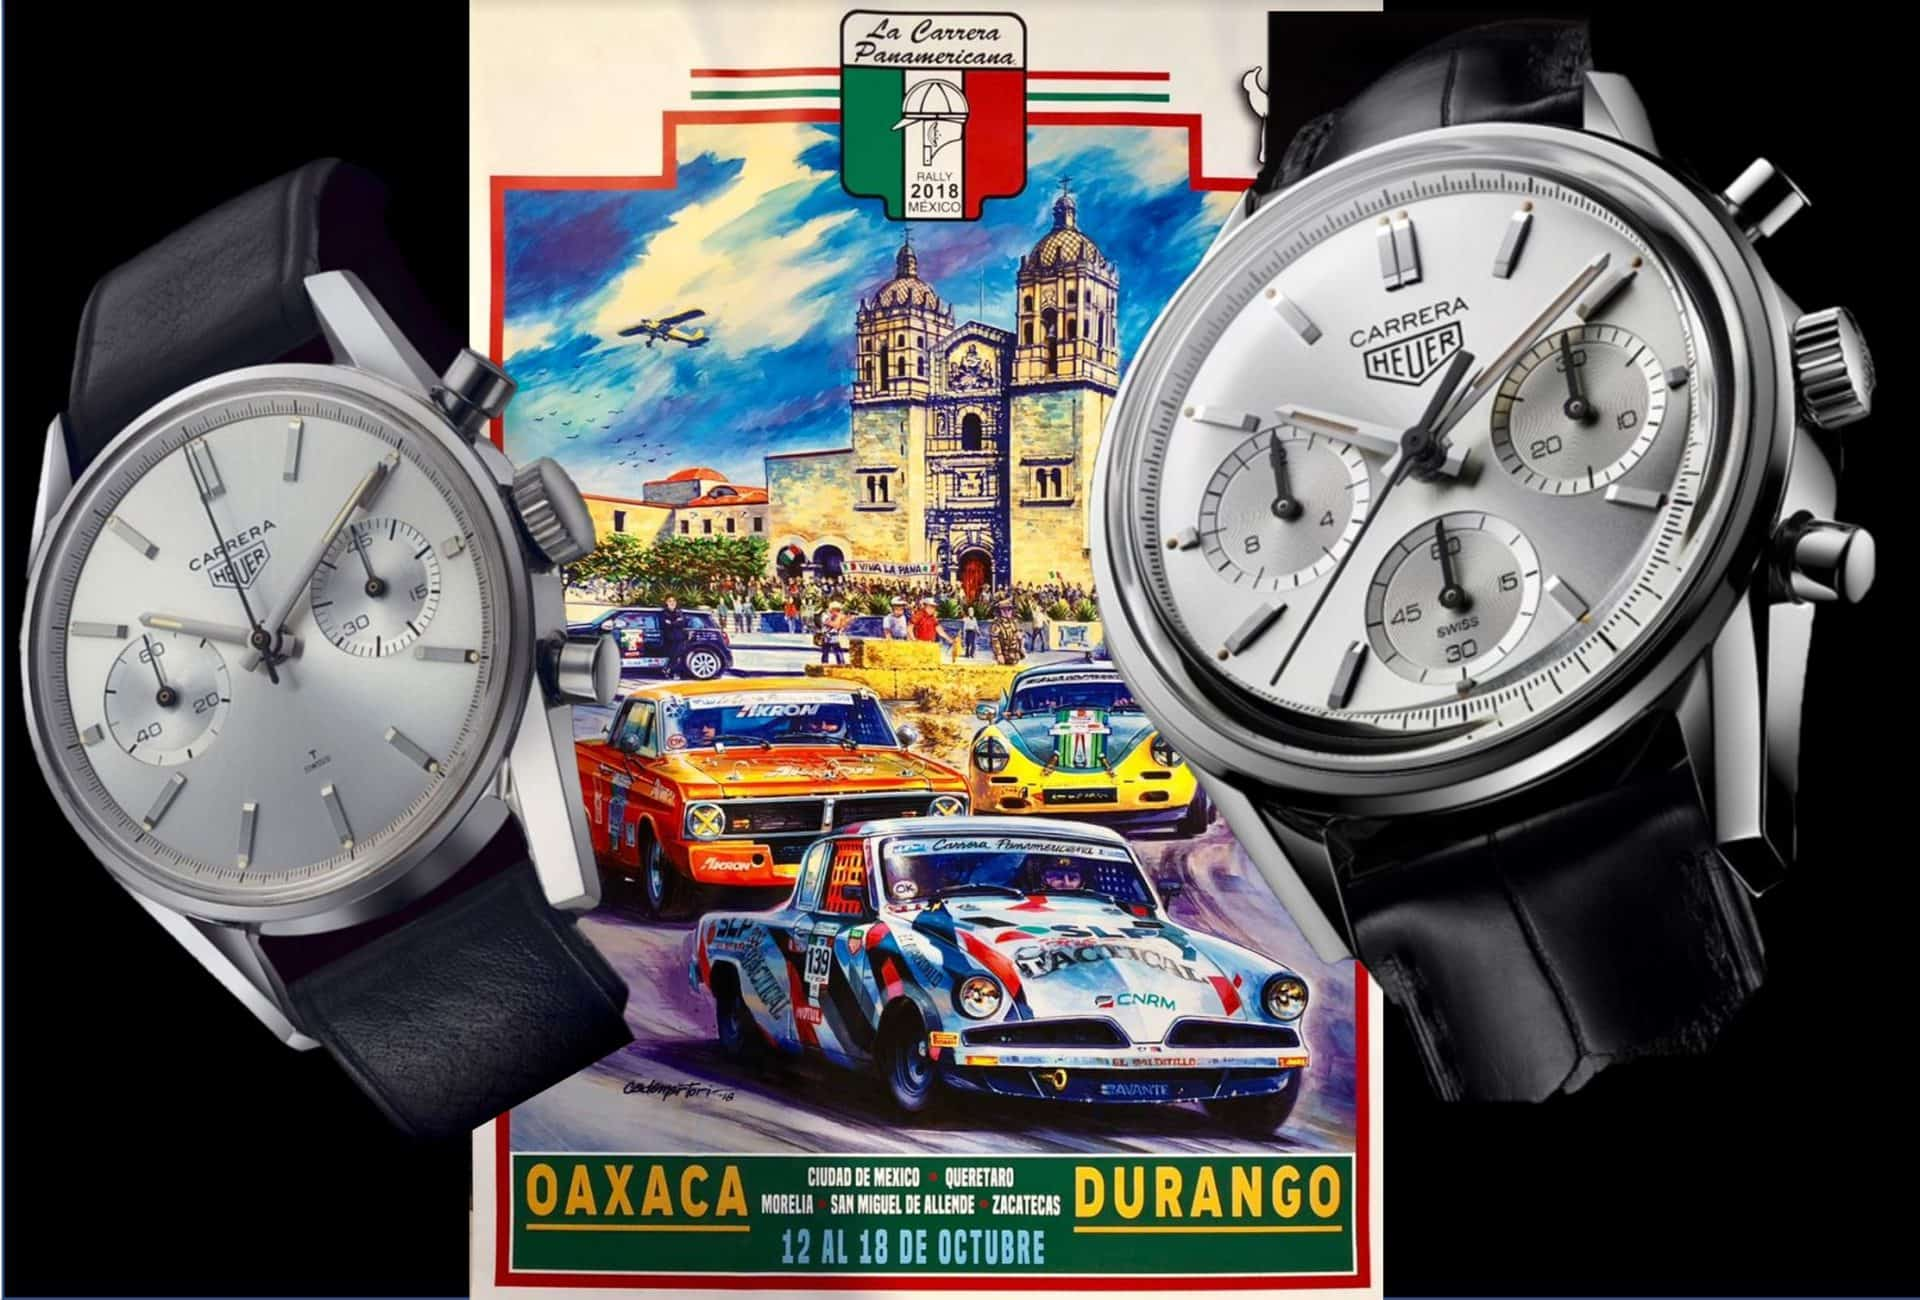 TAG Heuer Carrera 160 Years Silver Limited EditionTAG Heuers Carrera Re-Edition für Rennsport-Begeisterte